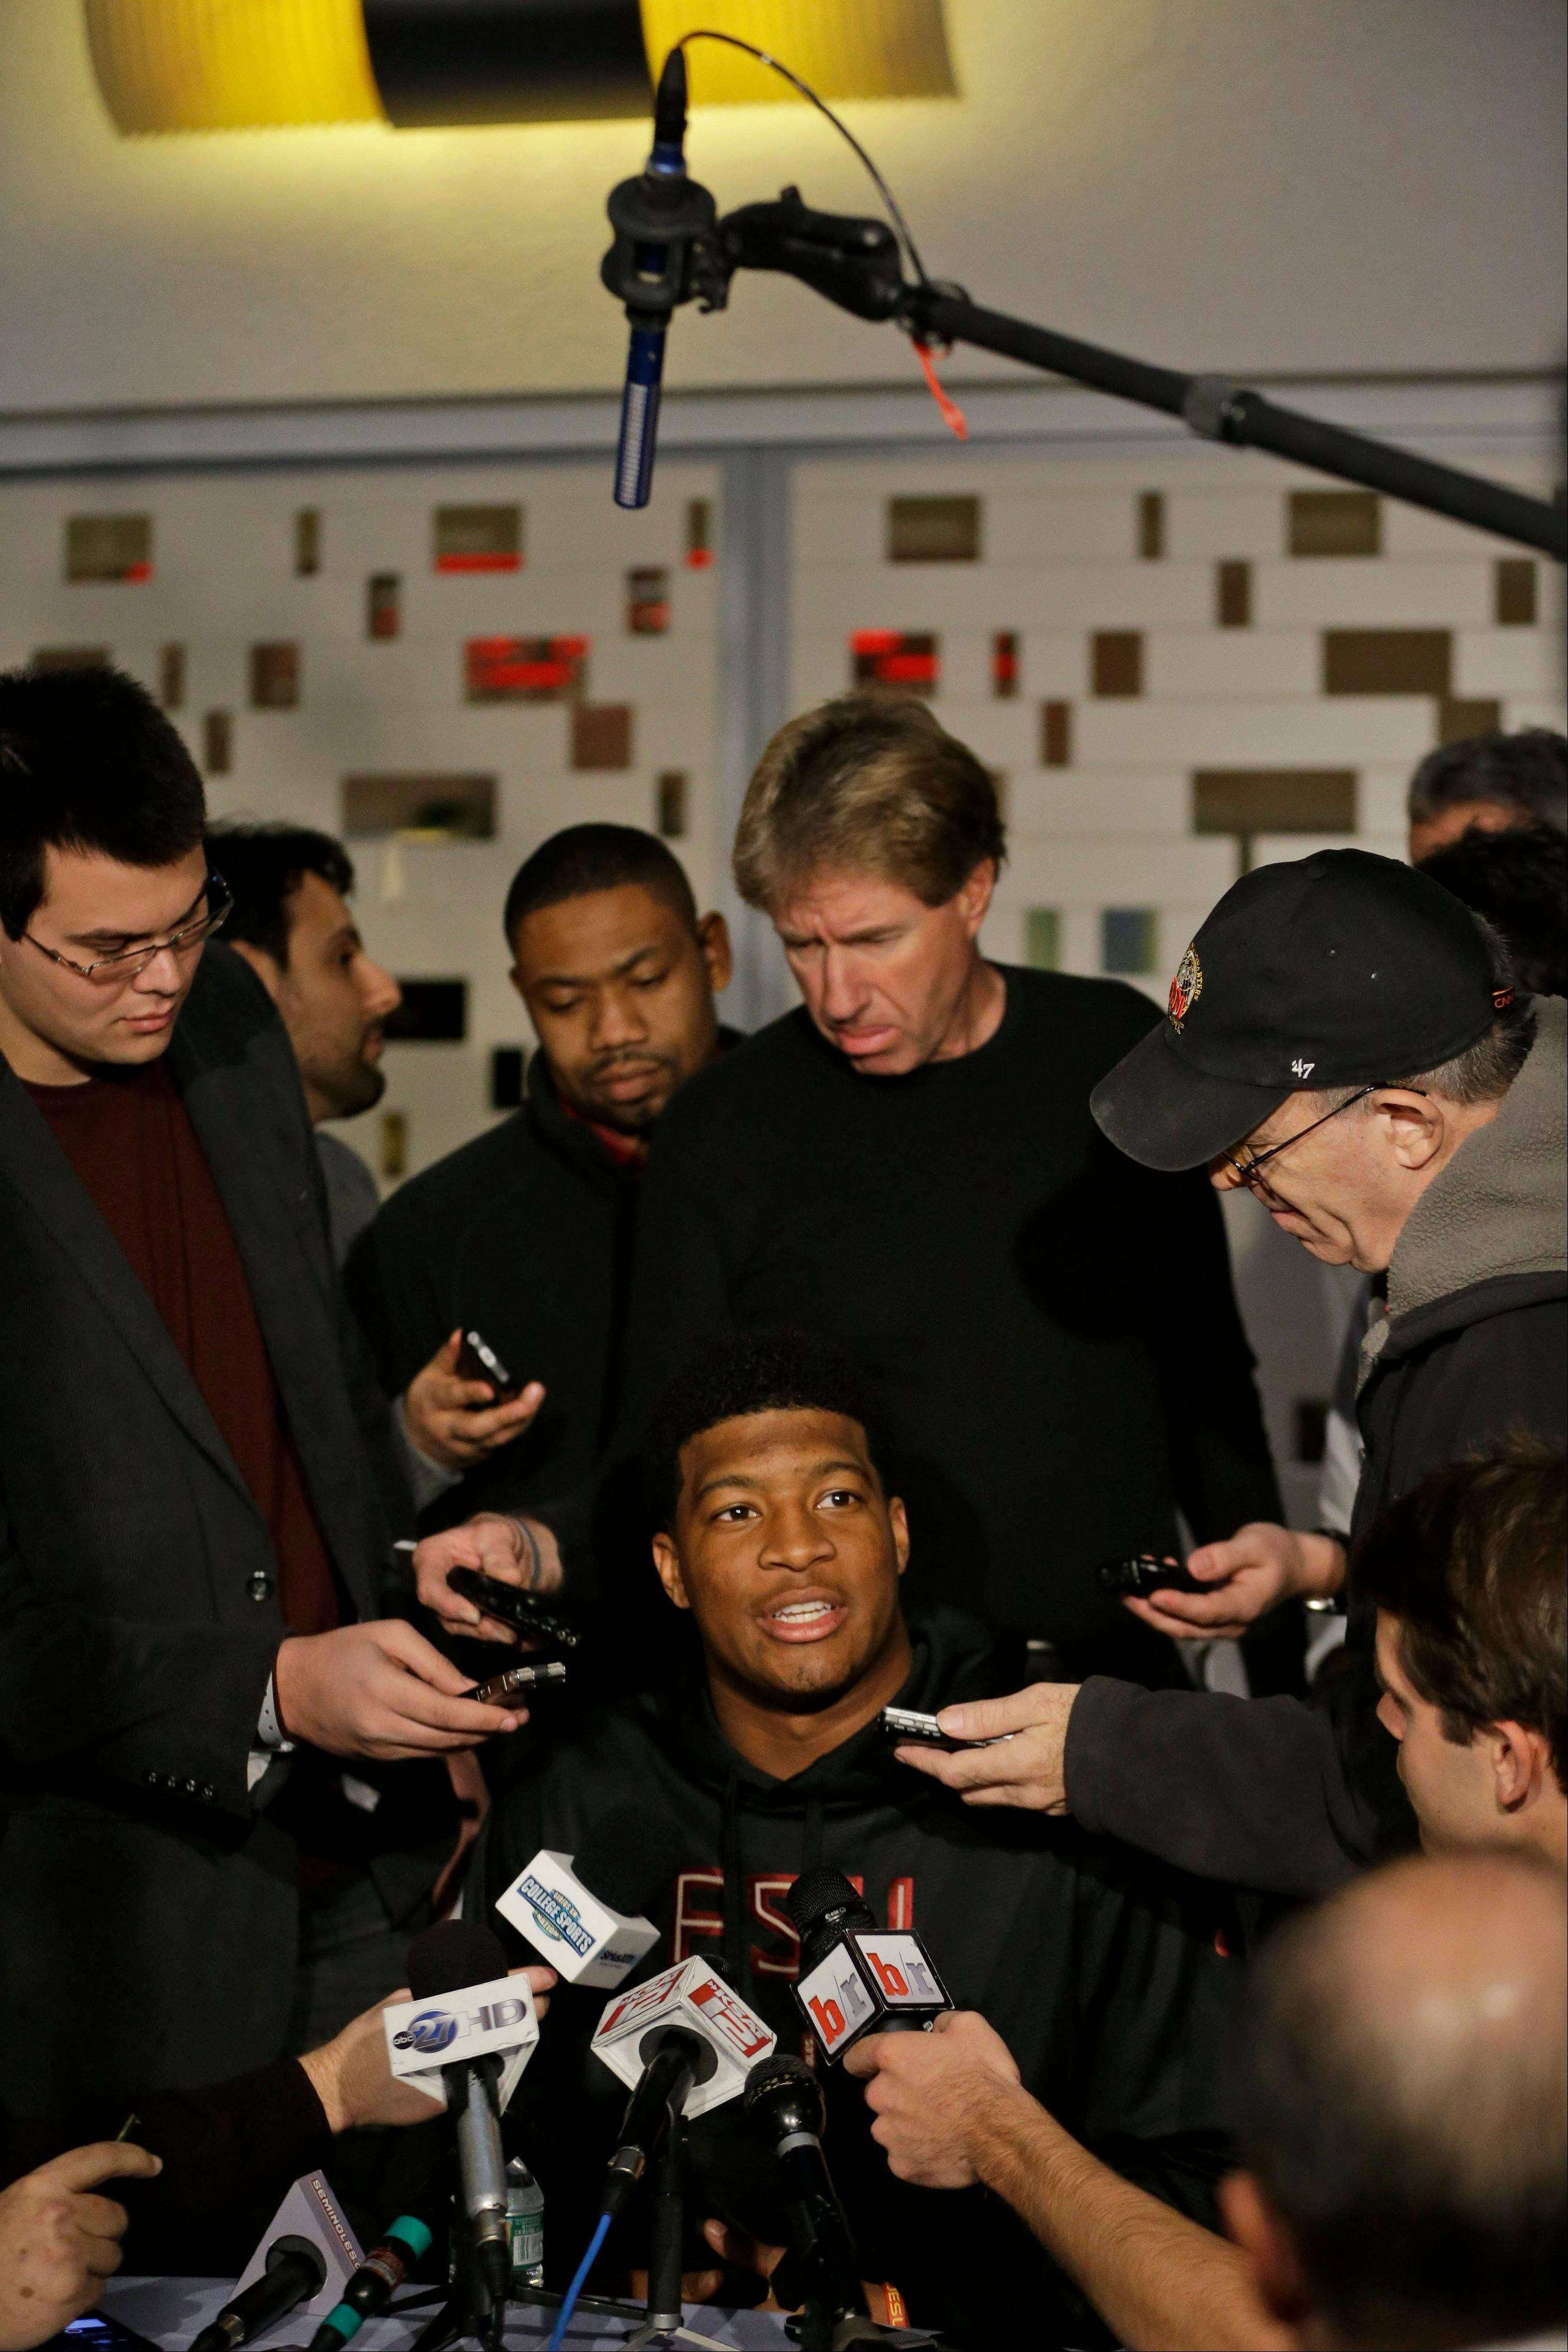 Heisman Trophy finalist Jameis Winston, center, a quarterback at Florida State, talks to reporters during an informal media availability, Friday, Dec. 13, 2013, in New York. (AP Photo/Julio Cortez)